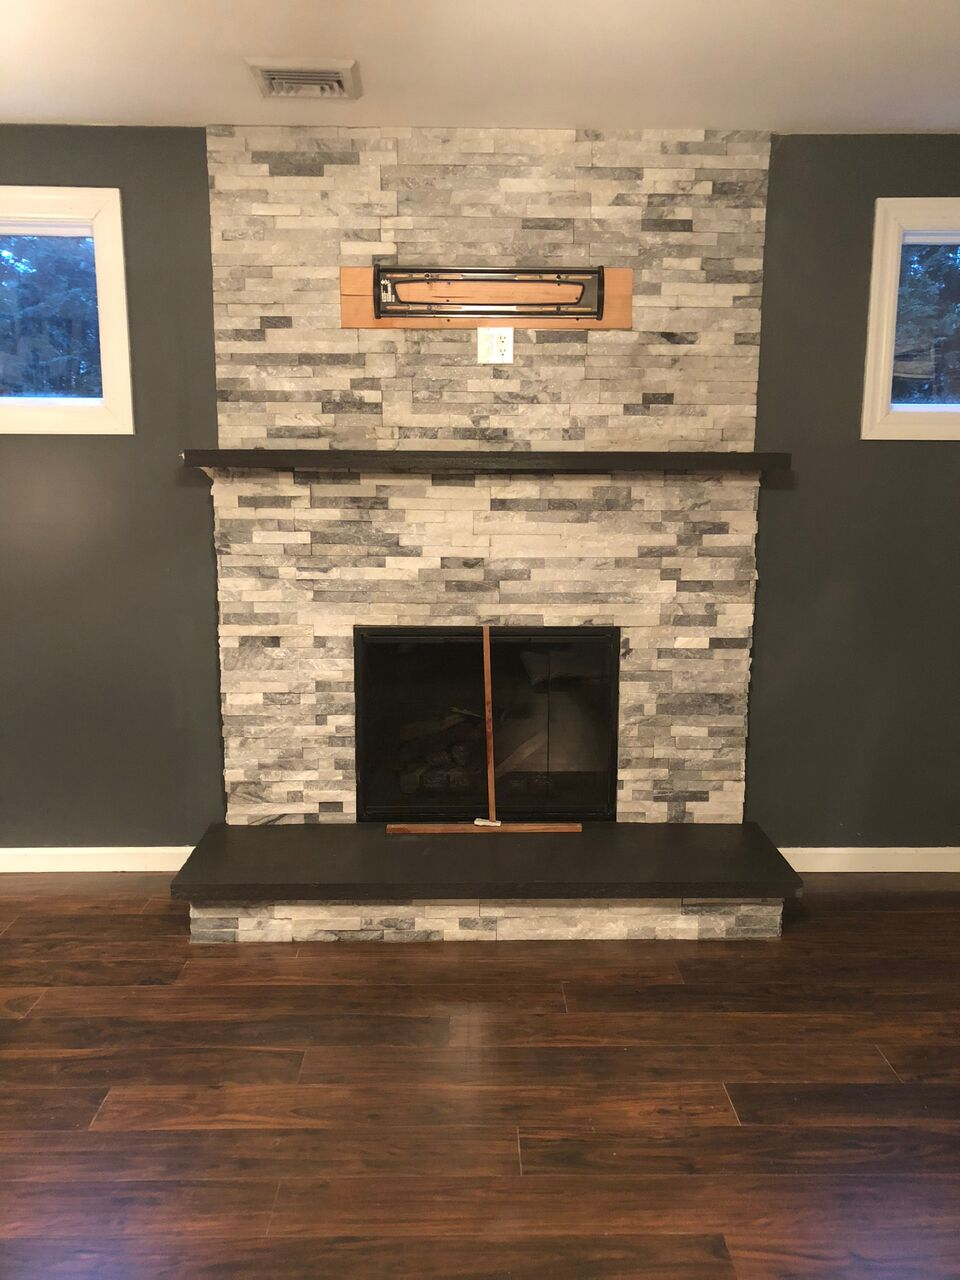 3 Types Of Interior Masonry Fireplace Materials And Their Benefits Above All Masonry